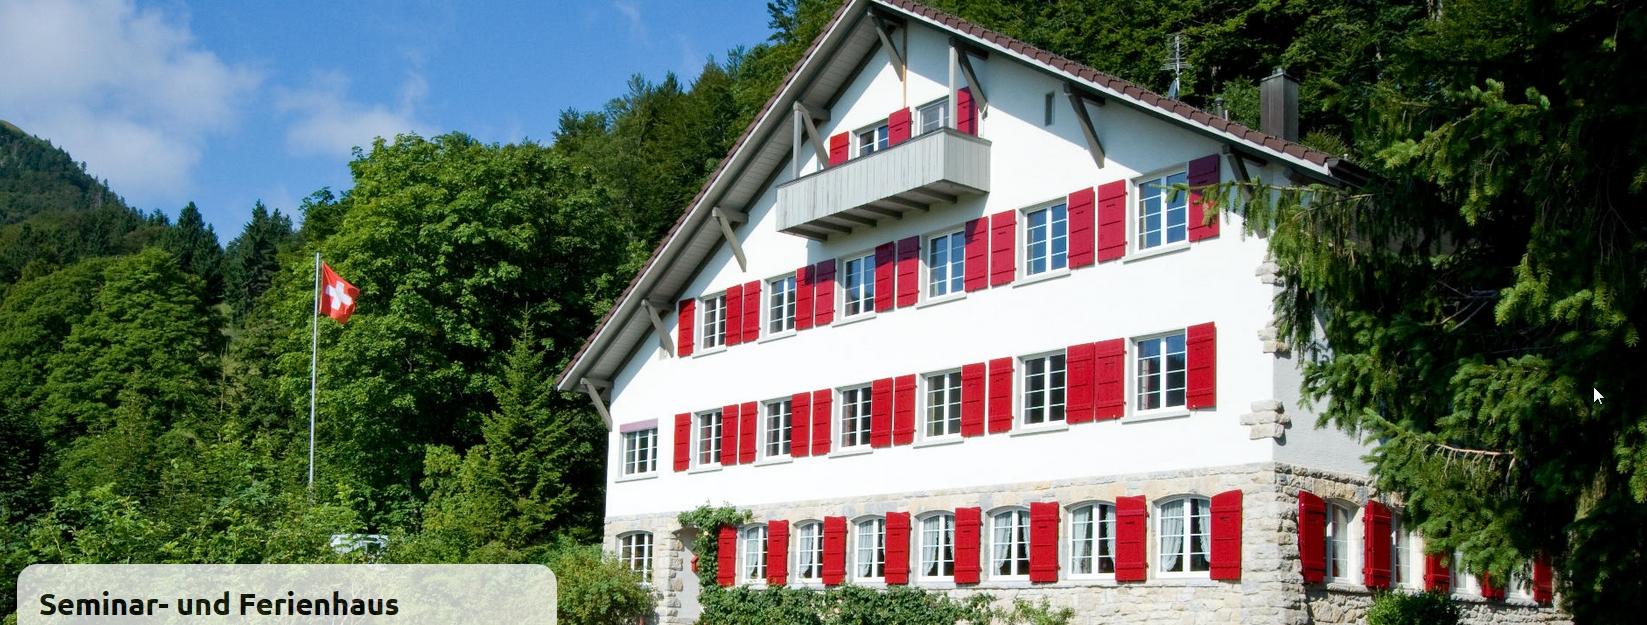 immobilien-solothurn338